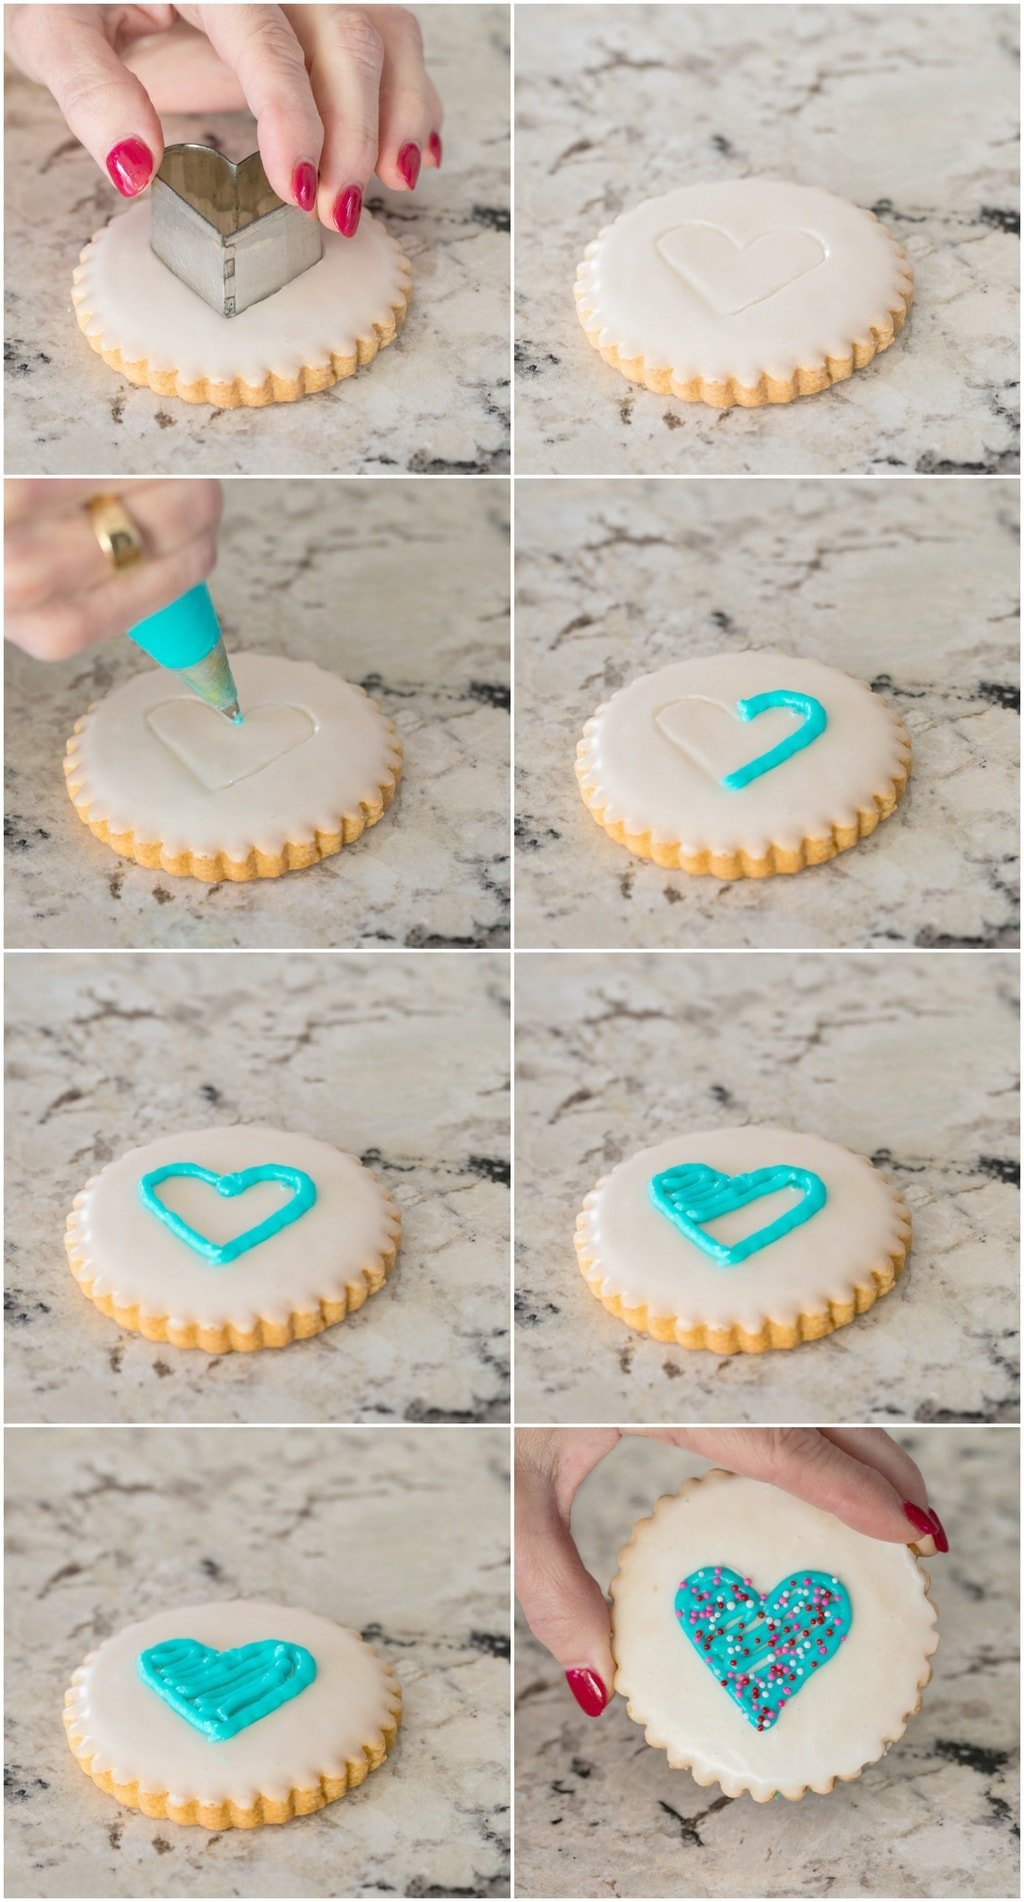 Photo collage of how to decorate Easy Decorated Shortbread Cookies for Valentine's Day.